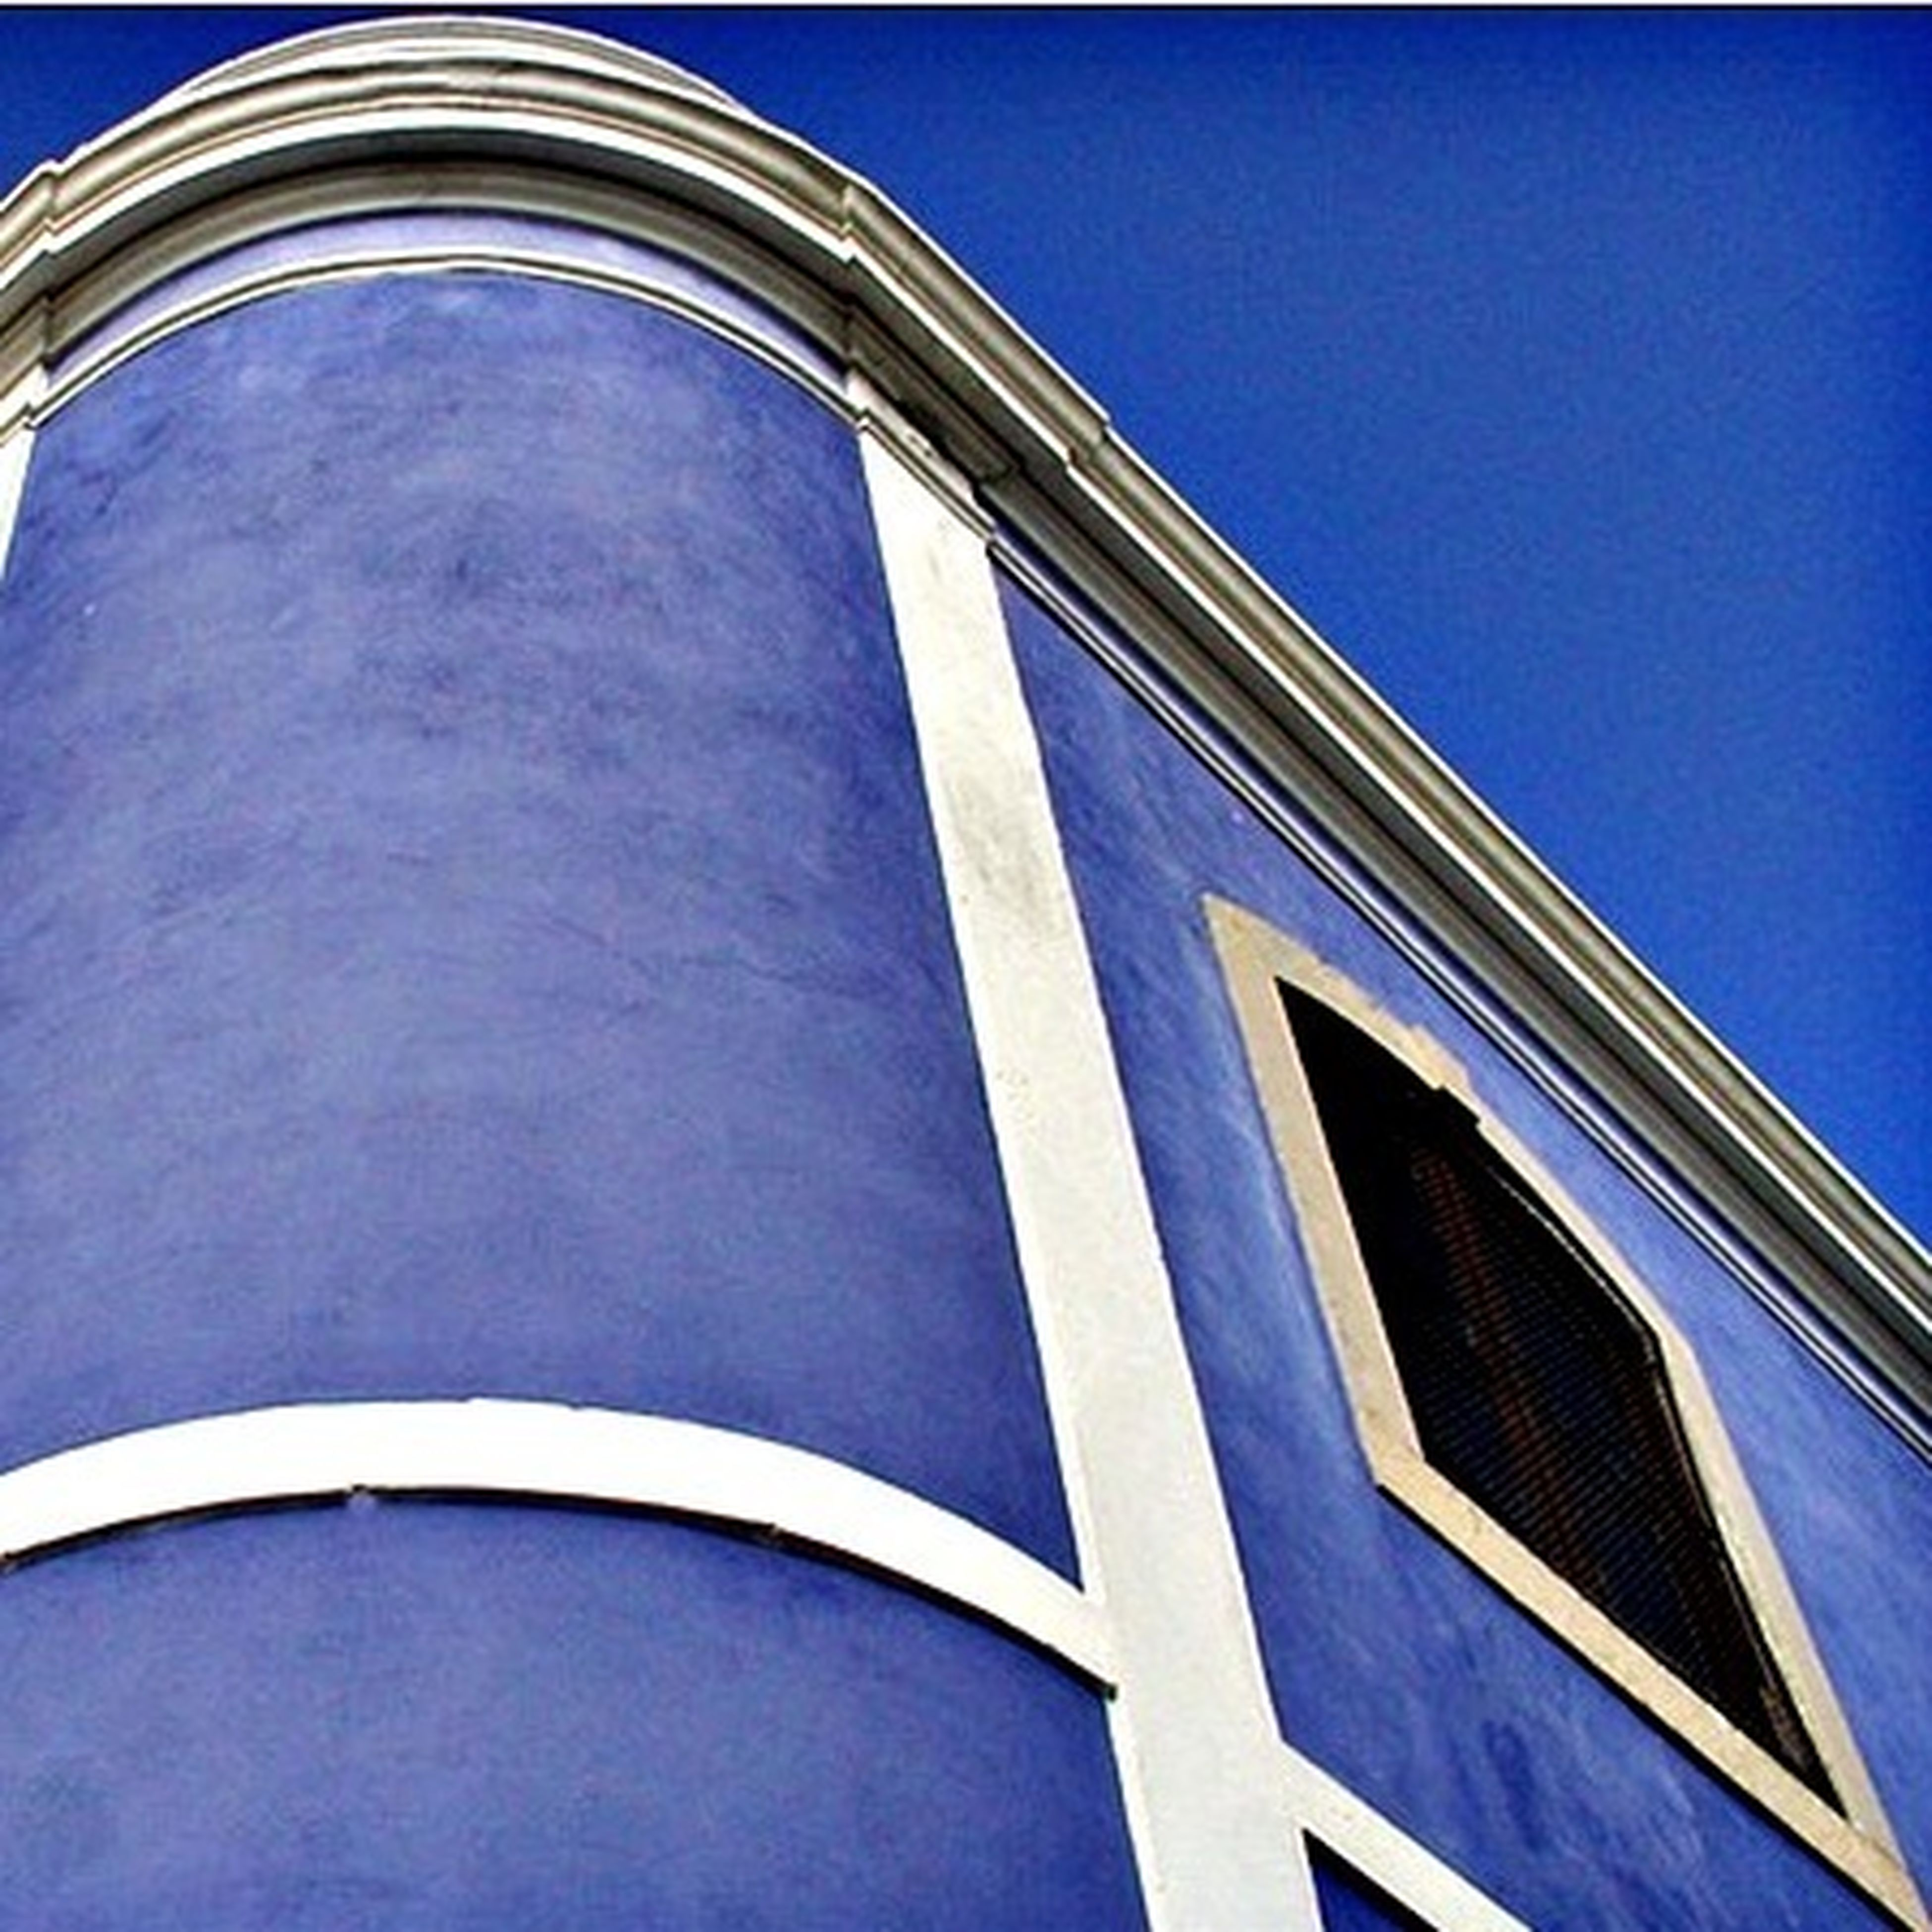 blue, low angle view, architecture, built structure, building exterior, clear sky, window, building, glass - material, reflection, modern, copy space, day, no people, outdoors, sunlight, sky, high section, pattern, part of